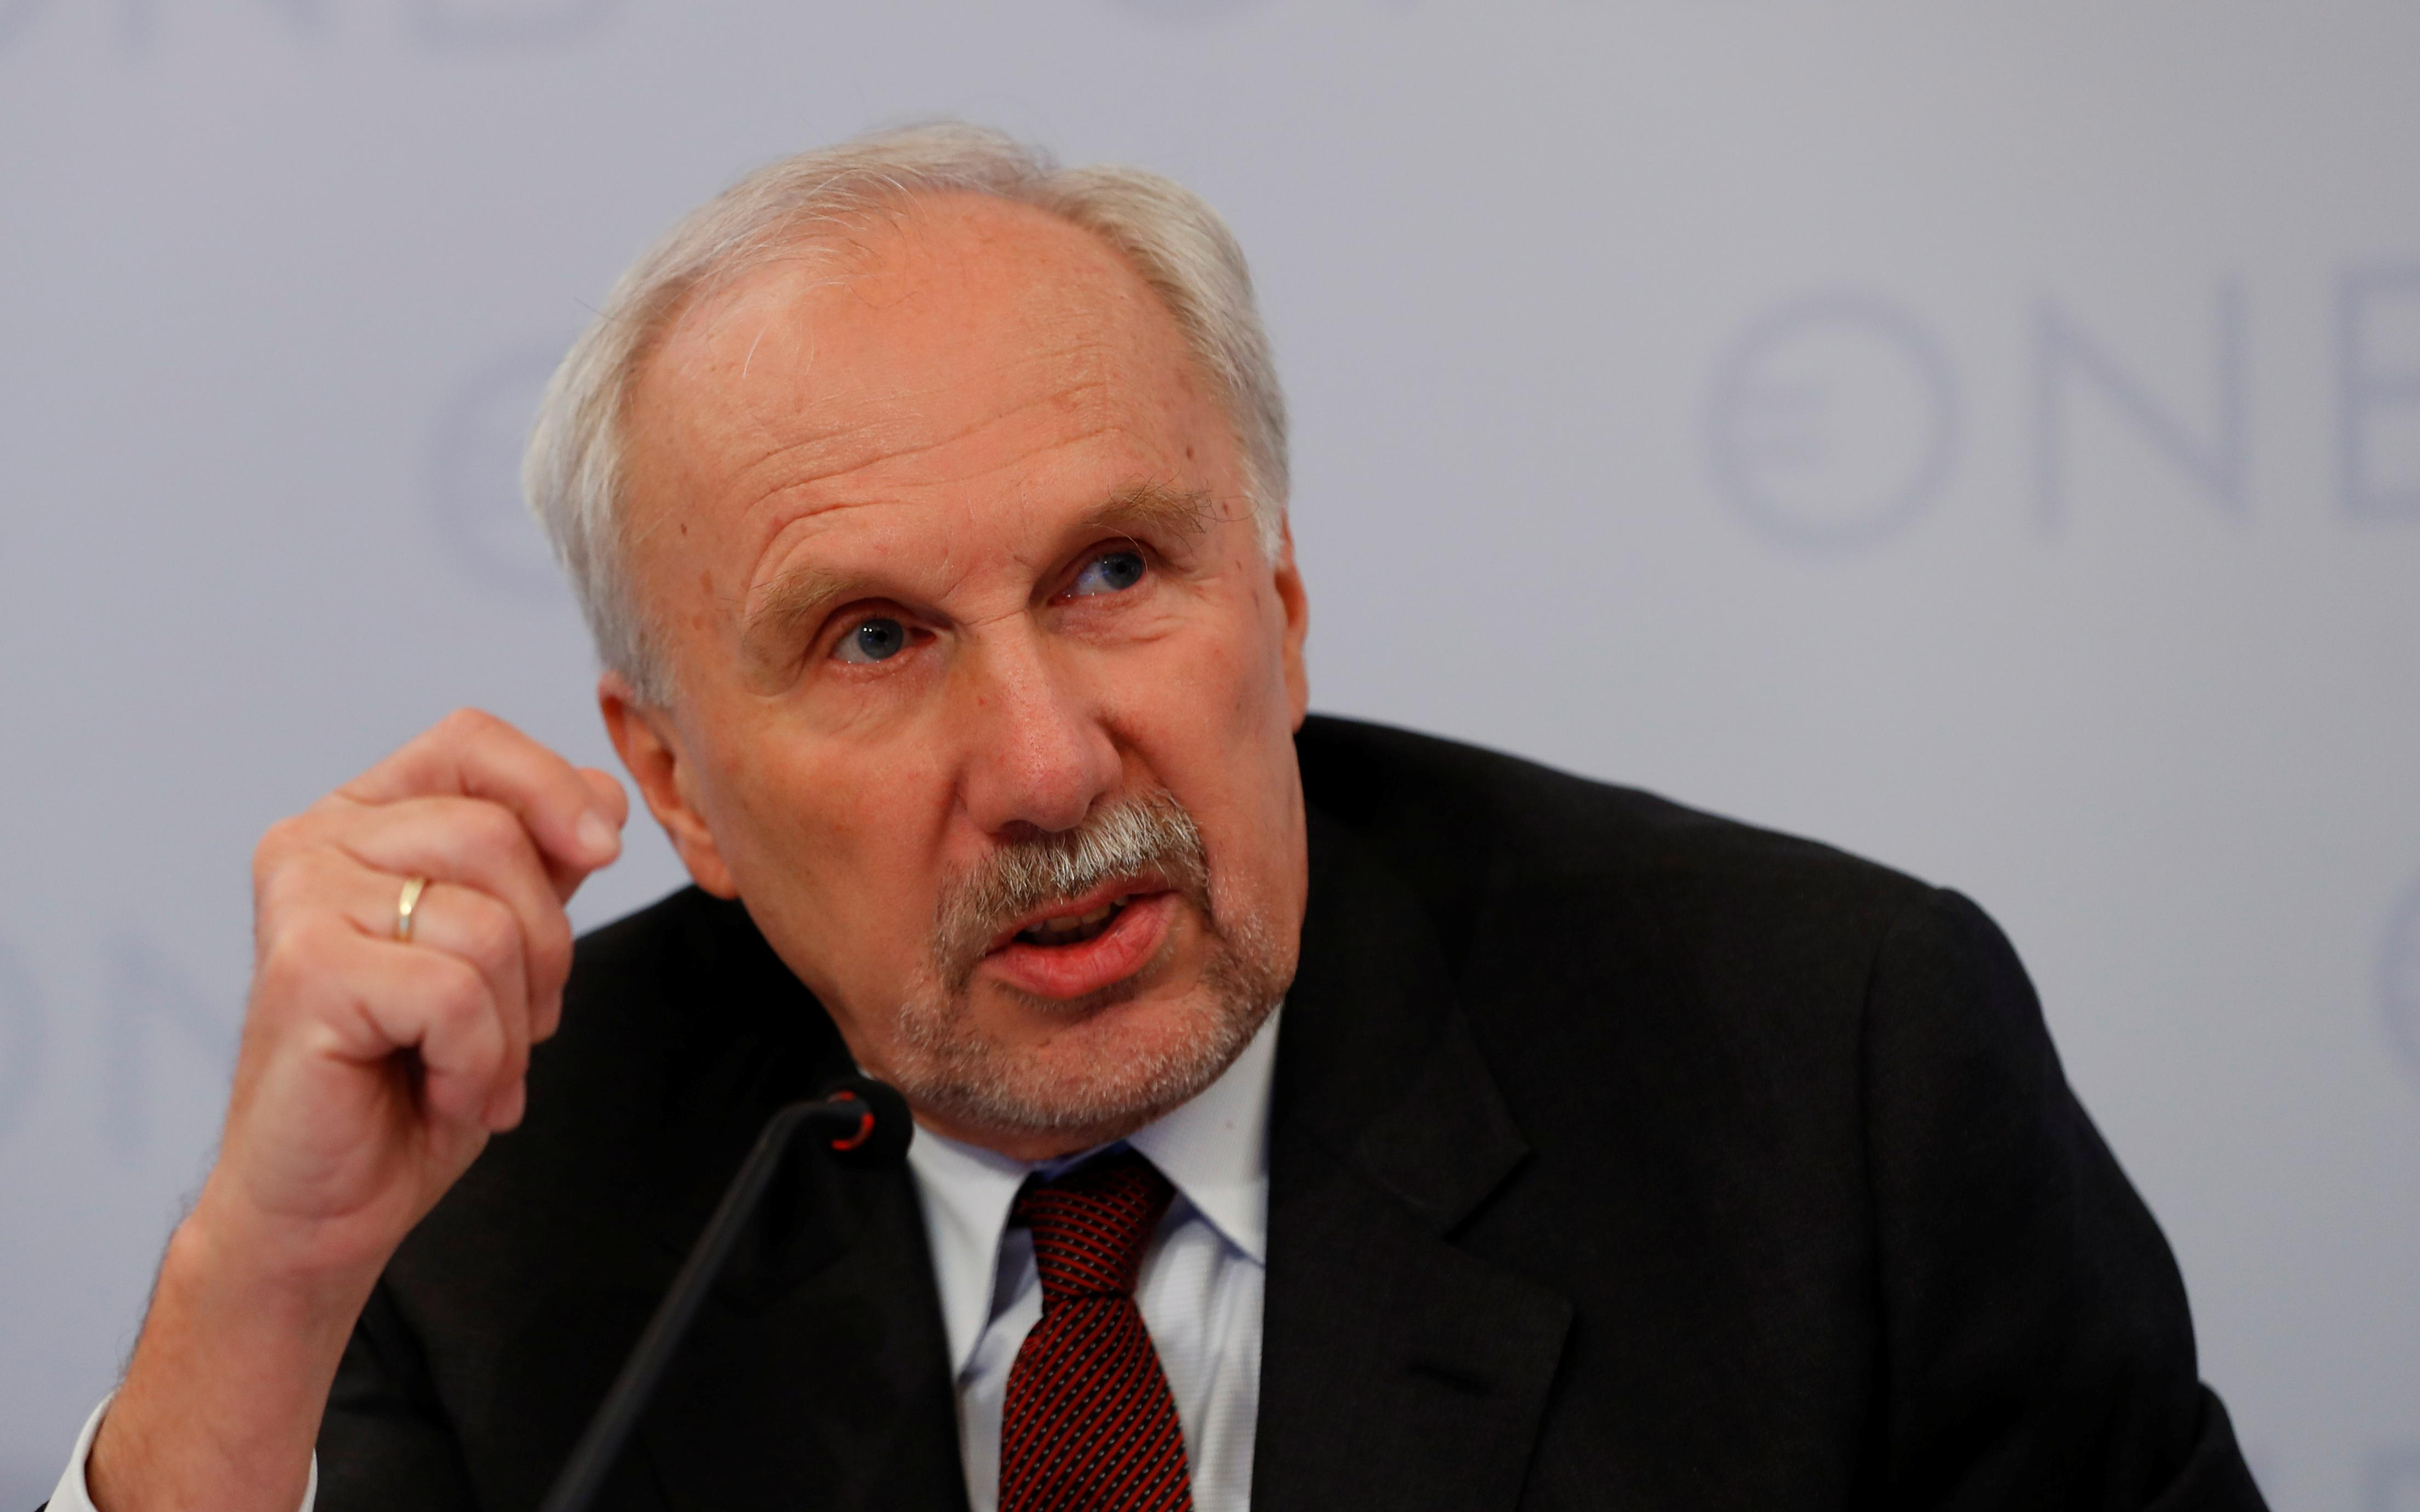 ECB's Nowotny says takes very positive view of Lagarde nomination